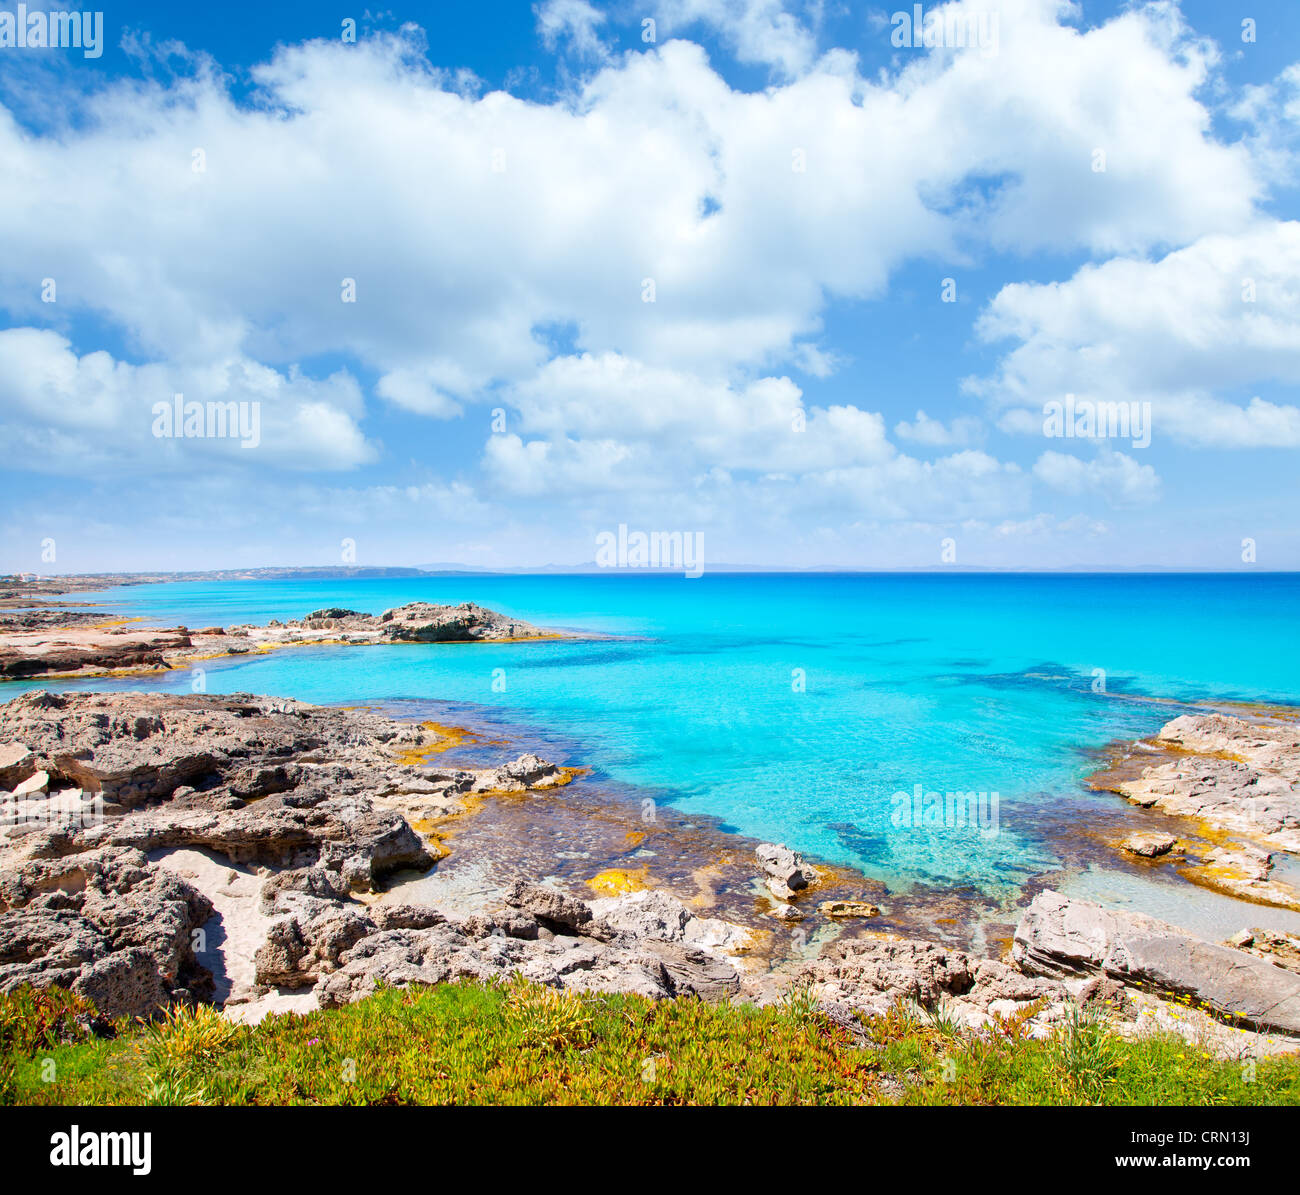 Balearic formentera island in escalo rocky beach and turquoise sea - Stock Image